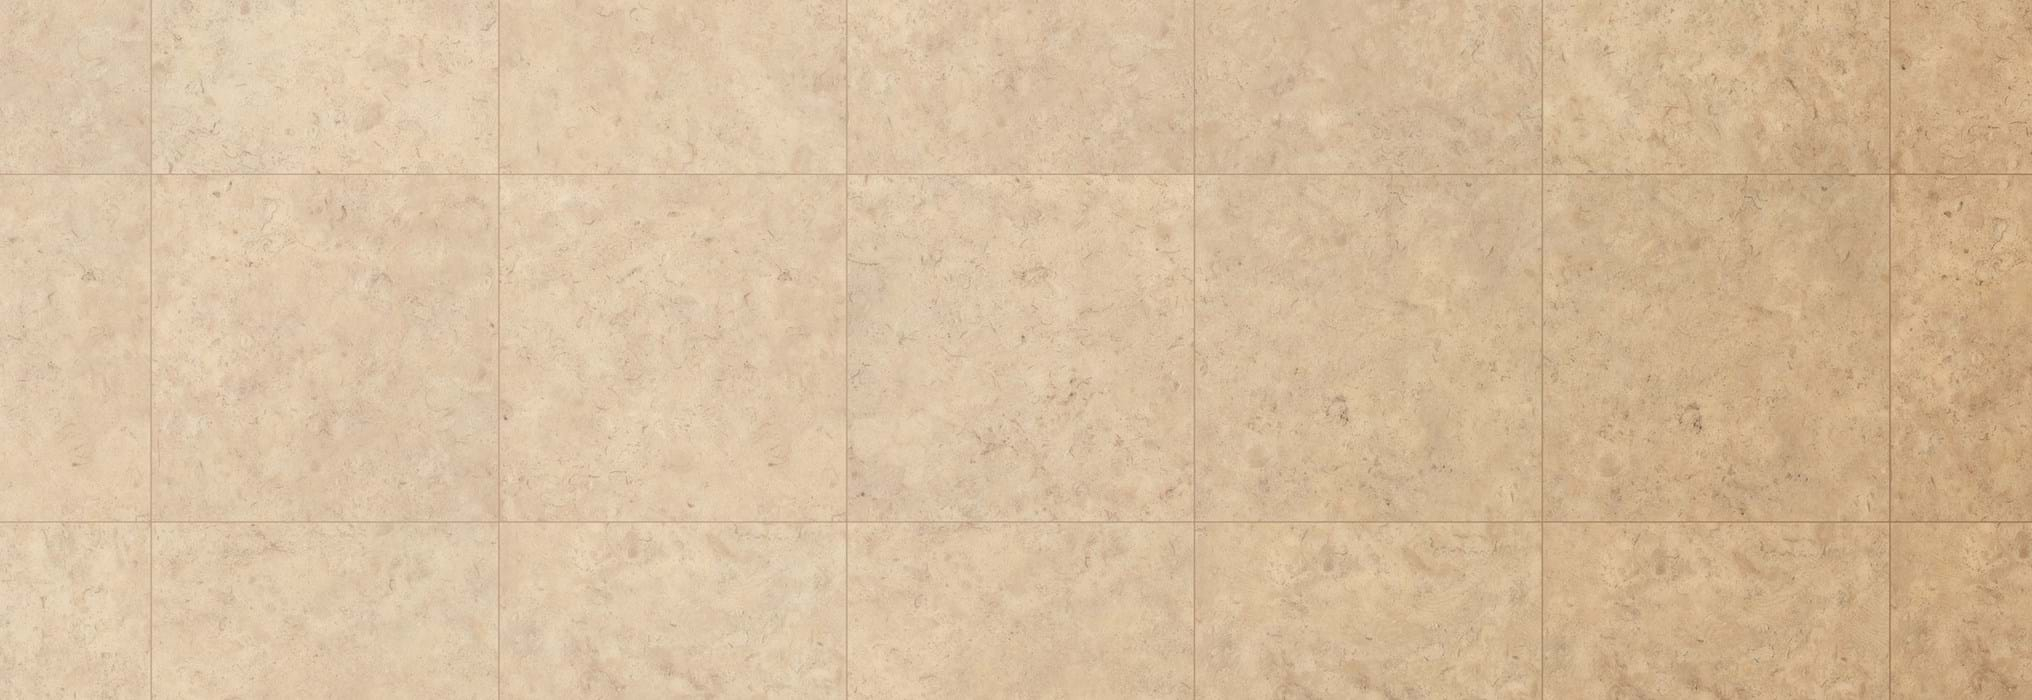 Amtico International: Caspian Limestone - AM5SLC74